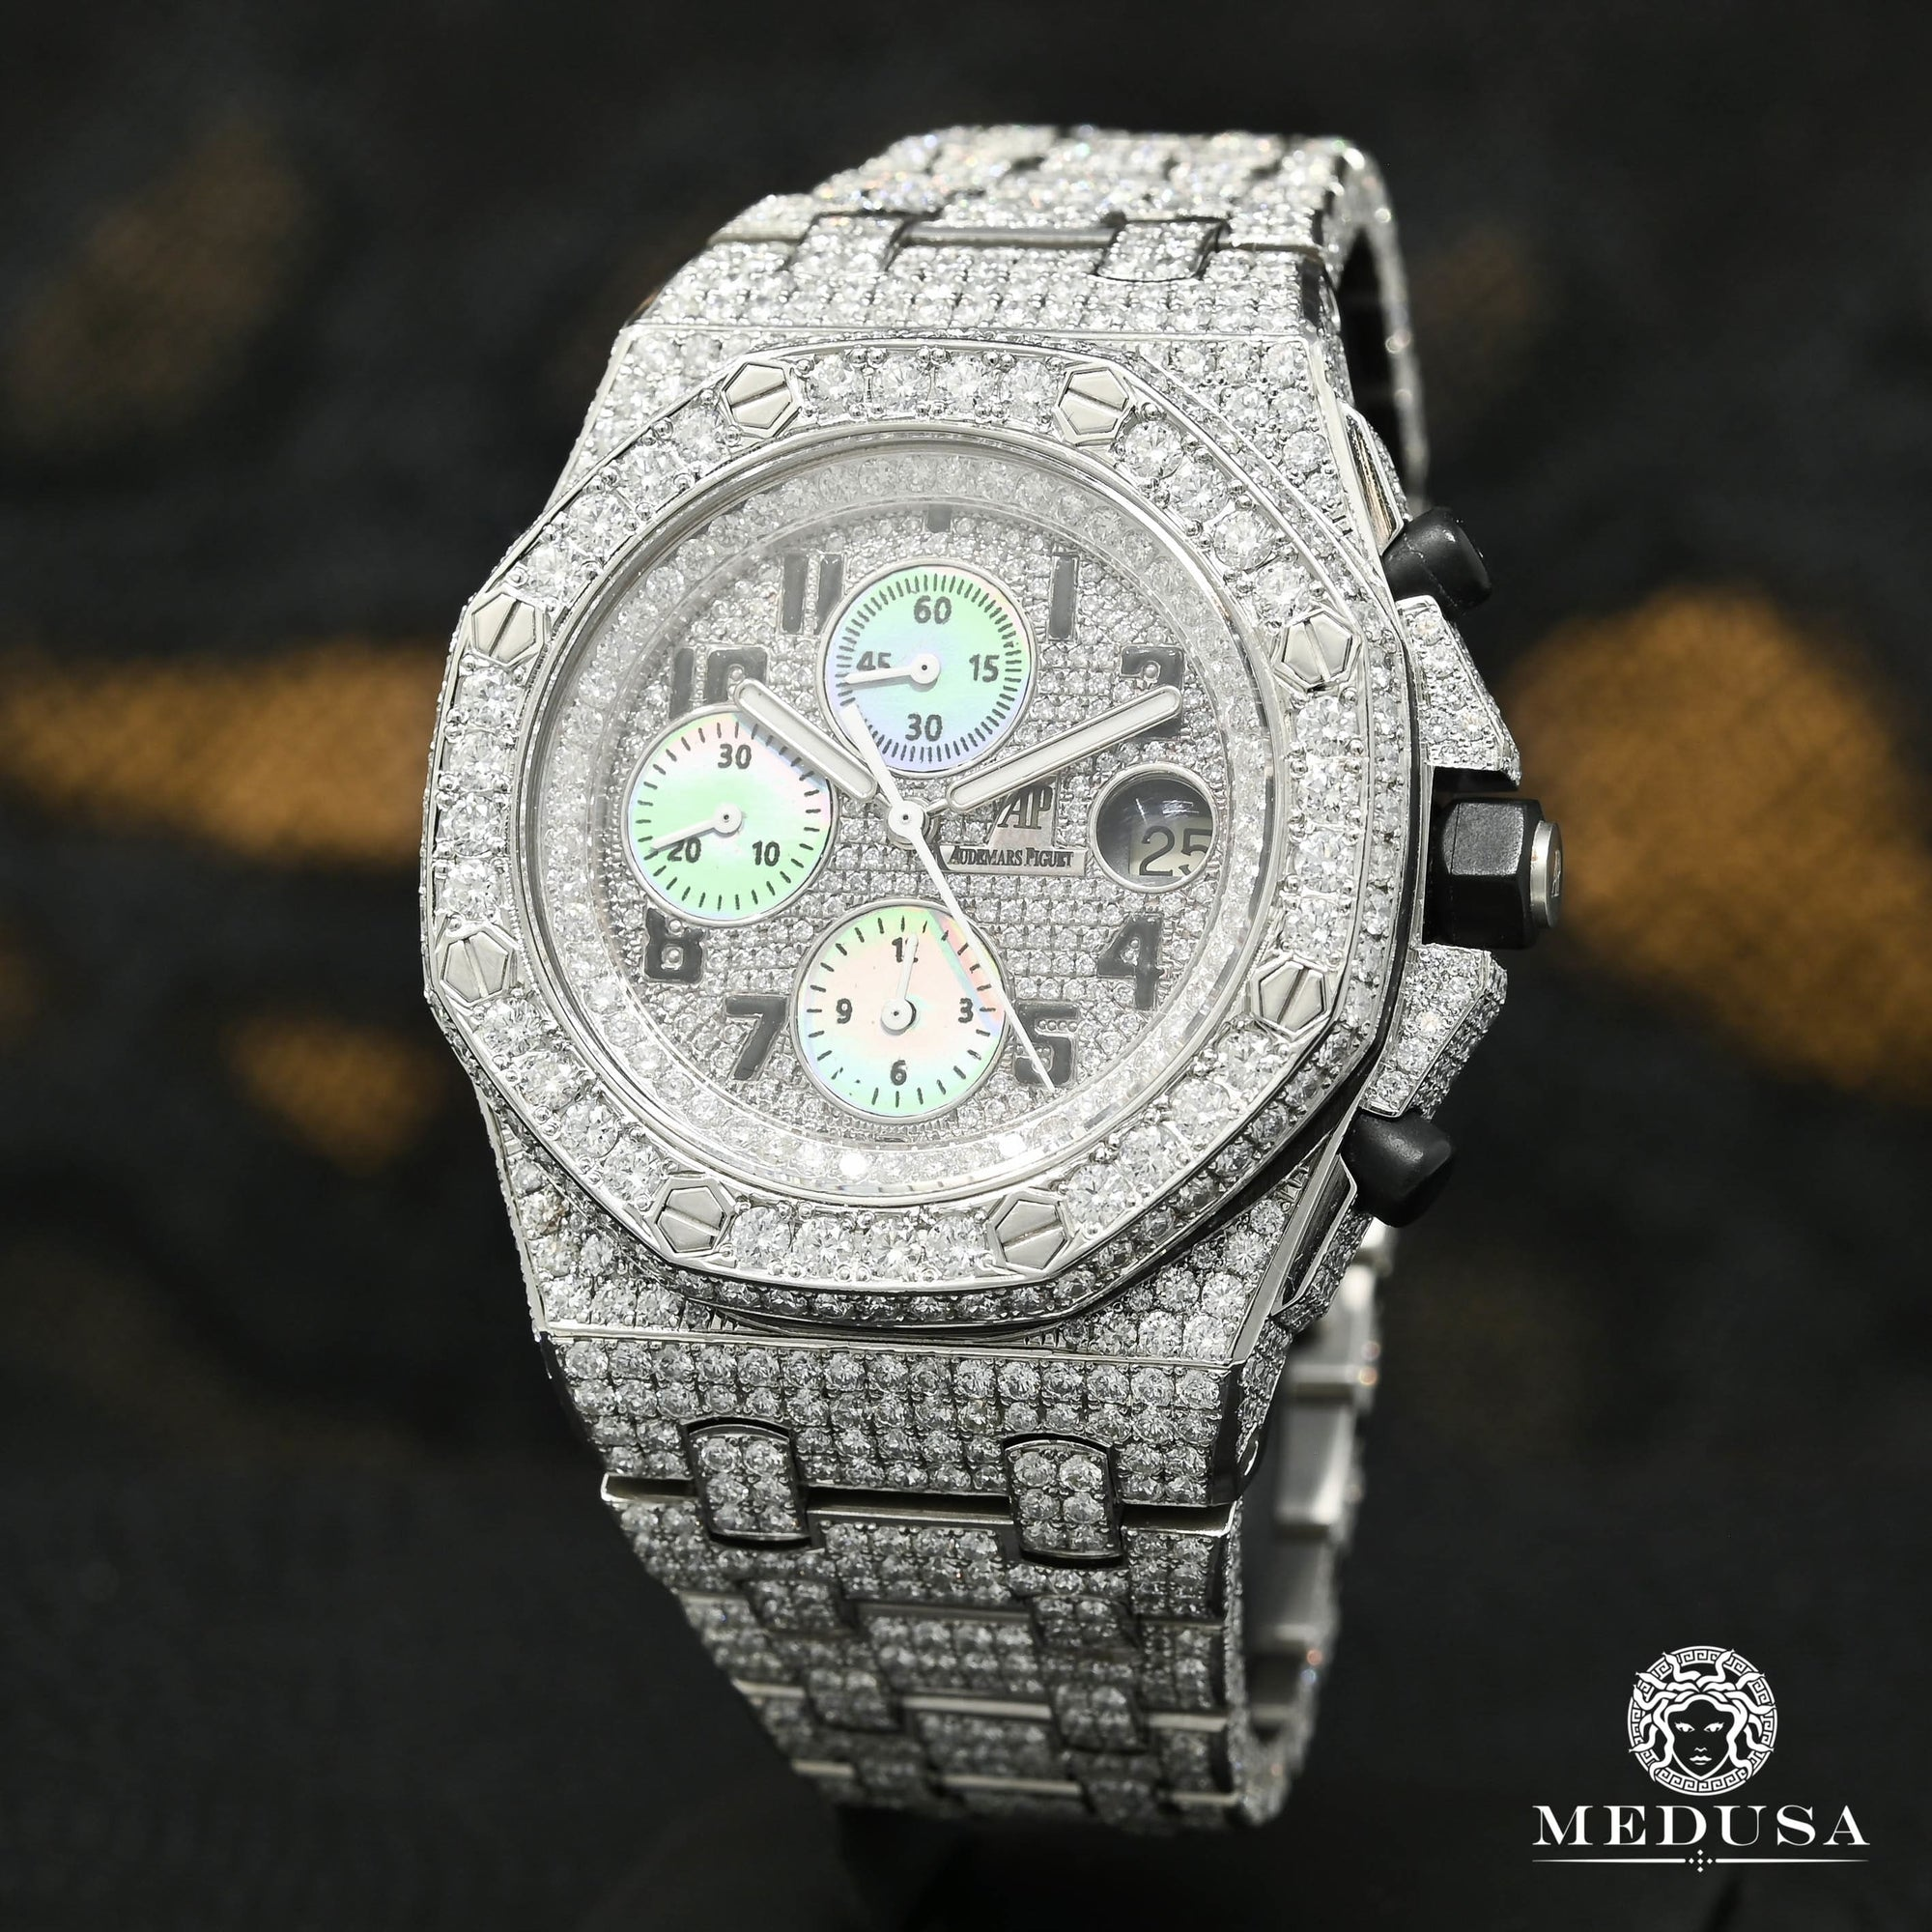 Montre Audemars Piguet | Montre Homme 42mm Audemars Piguet Offshore - Iced Stainless